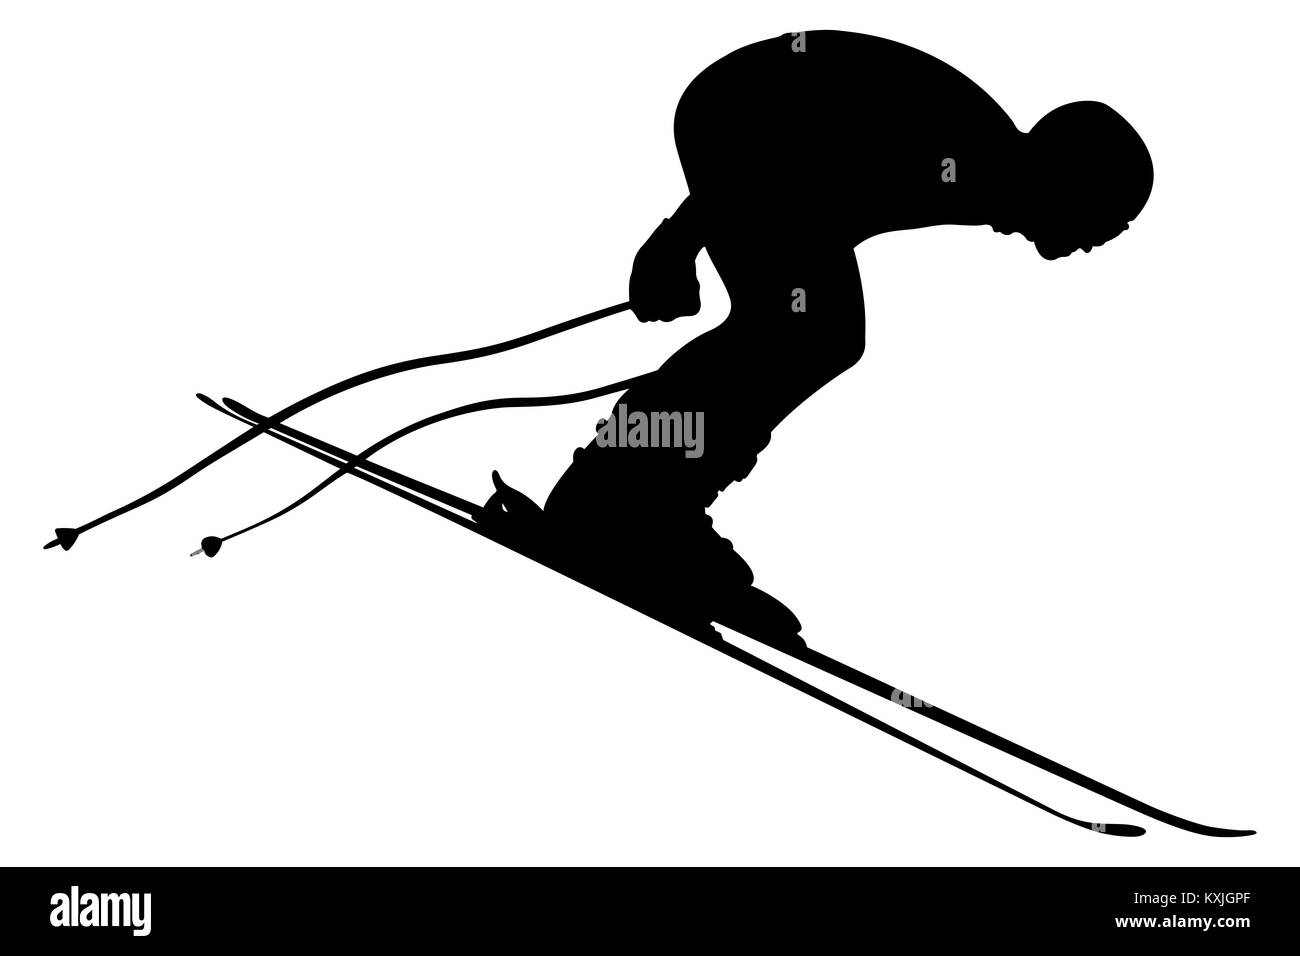 start skier athlete in competition alpine skiing - Stock Image